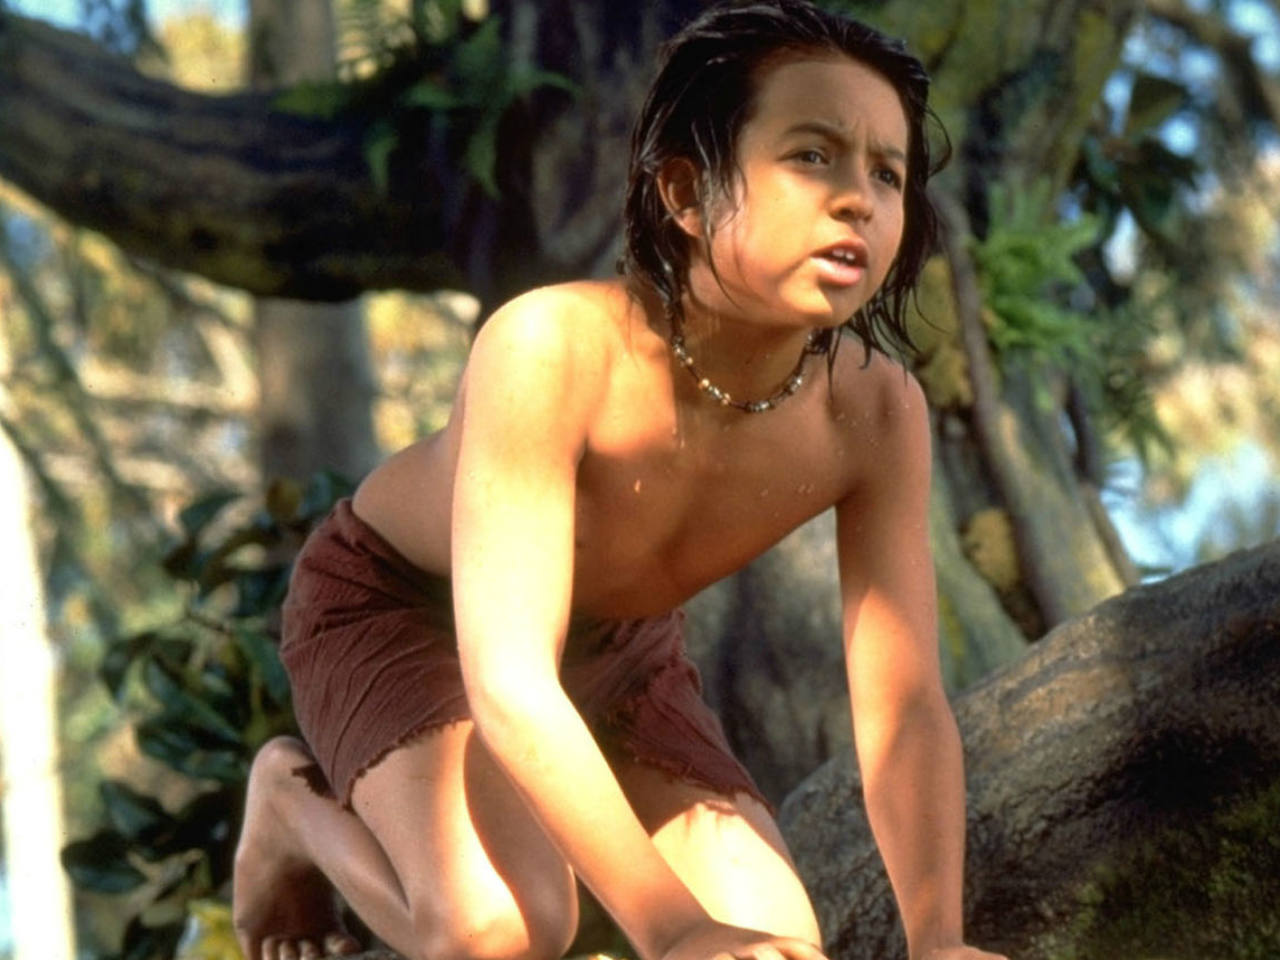 A still from the kids' movie The Jungle Book